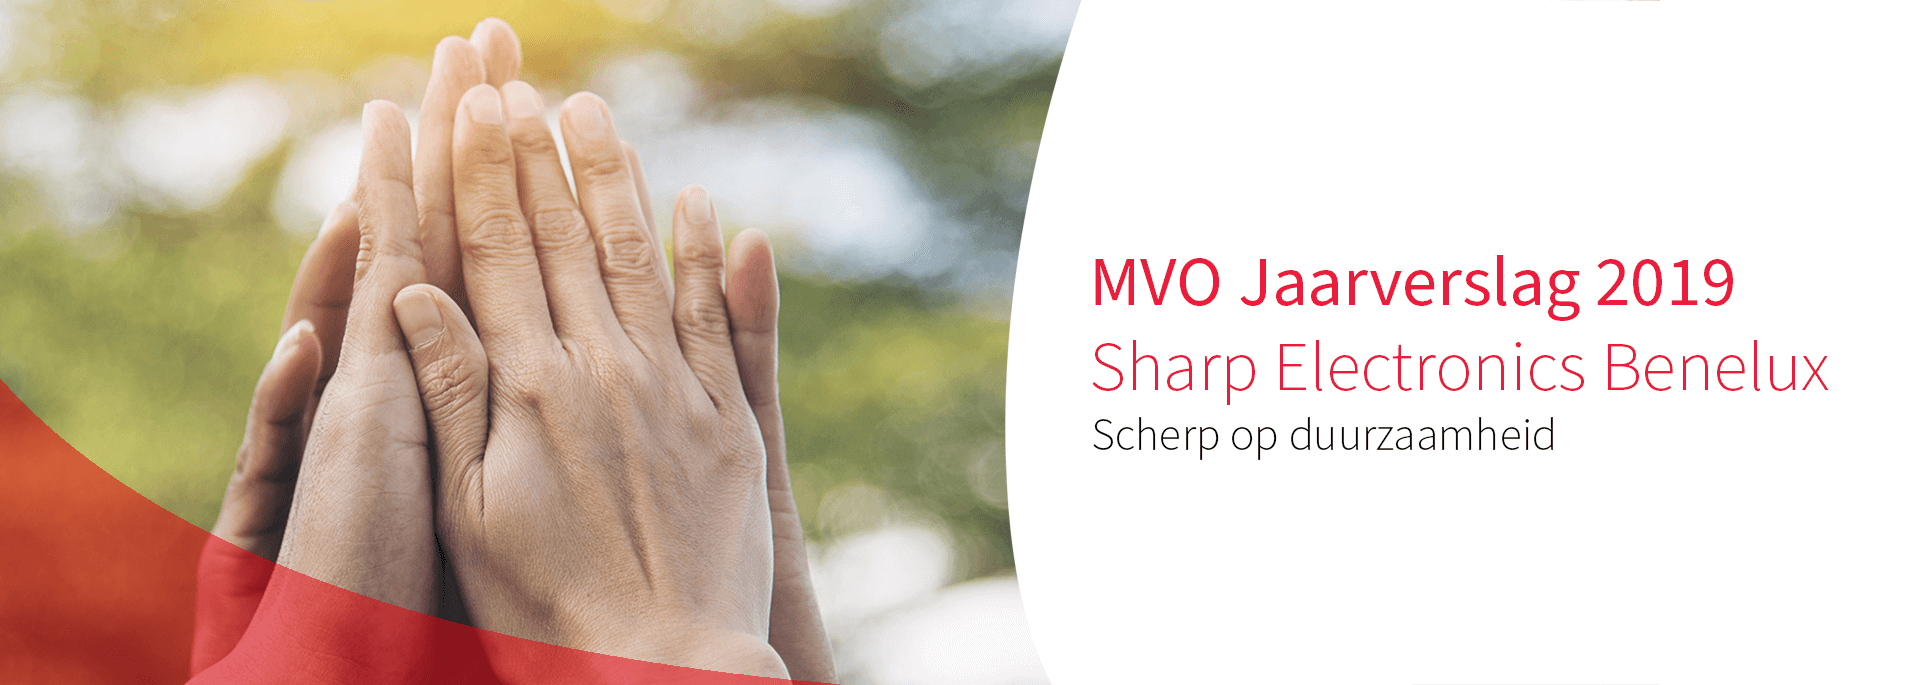 Sharp MVO jaarverslag